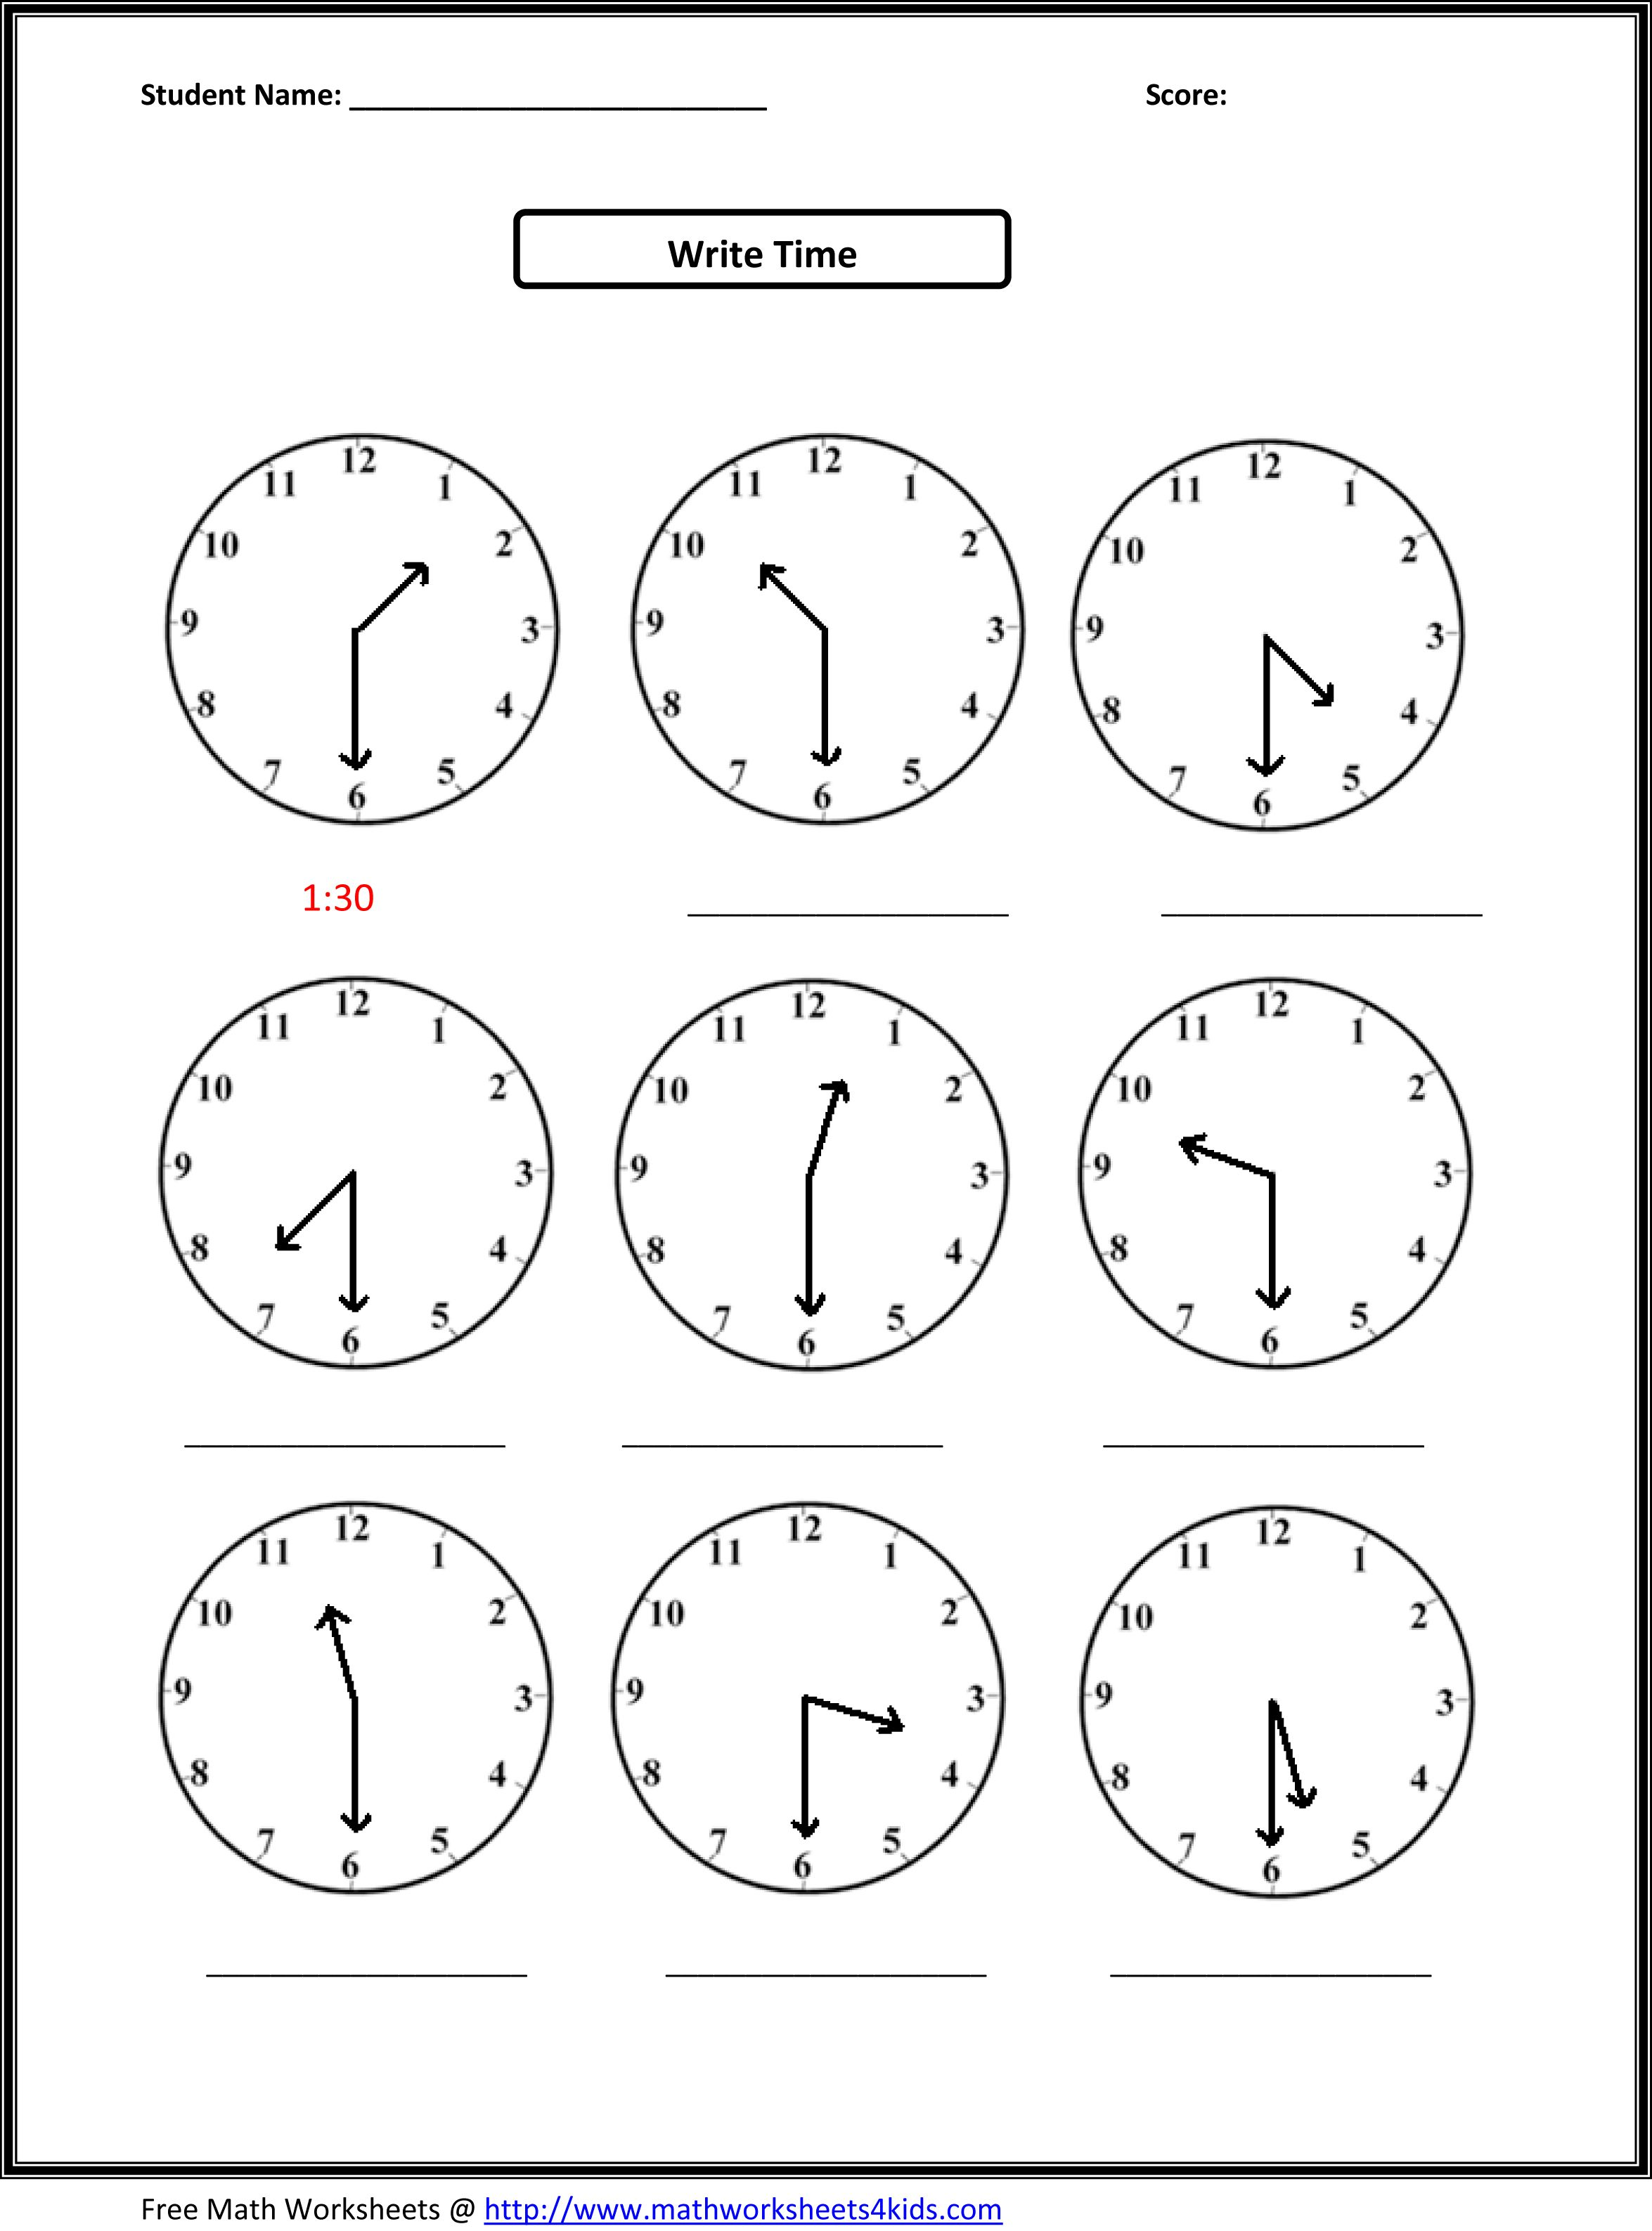 Proatmealus  Mesmerizing Worksheet On Time For Grade   Reocurent With Hot Free Printable Telling Time Worksheets Nd Grade  Reocurent With Amusing Long Division Worksheets Ks Also Worksheet For Junior Kg In Addition Verbs Worksheets For Grade  And Grade  Math Worksheets Printable As Well As Input Output Machines Grade  Worksheets Additionally Algebra Properties Worksheets From Reocurentcom With Proatmealus  Hot Worksheet On Time For Grade   Reocurent With Amusing Free Printable Telling Time Worksheets Nd Grade  Reocurent And Mesmerizing Long Division Worksheets Ks Also Worksheet For Junior Kg In Addition Verbs Worksheets For Grade  From Reocurentcom